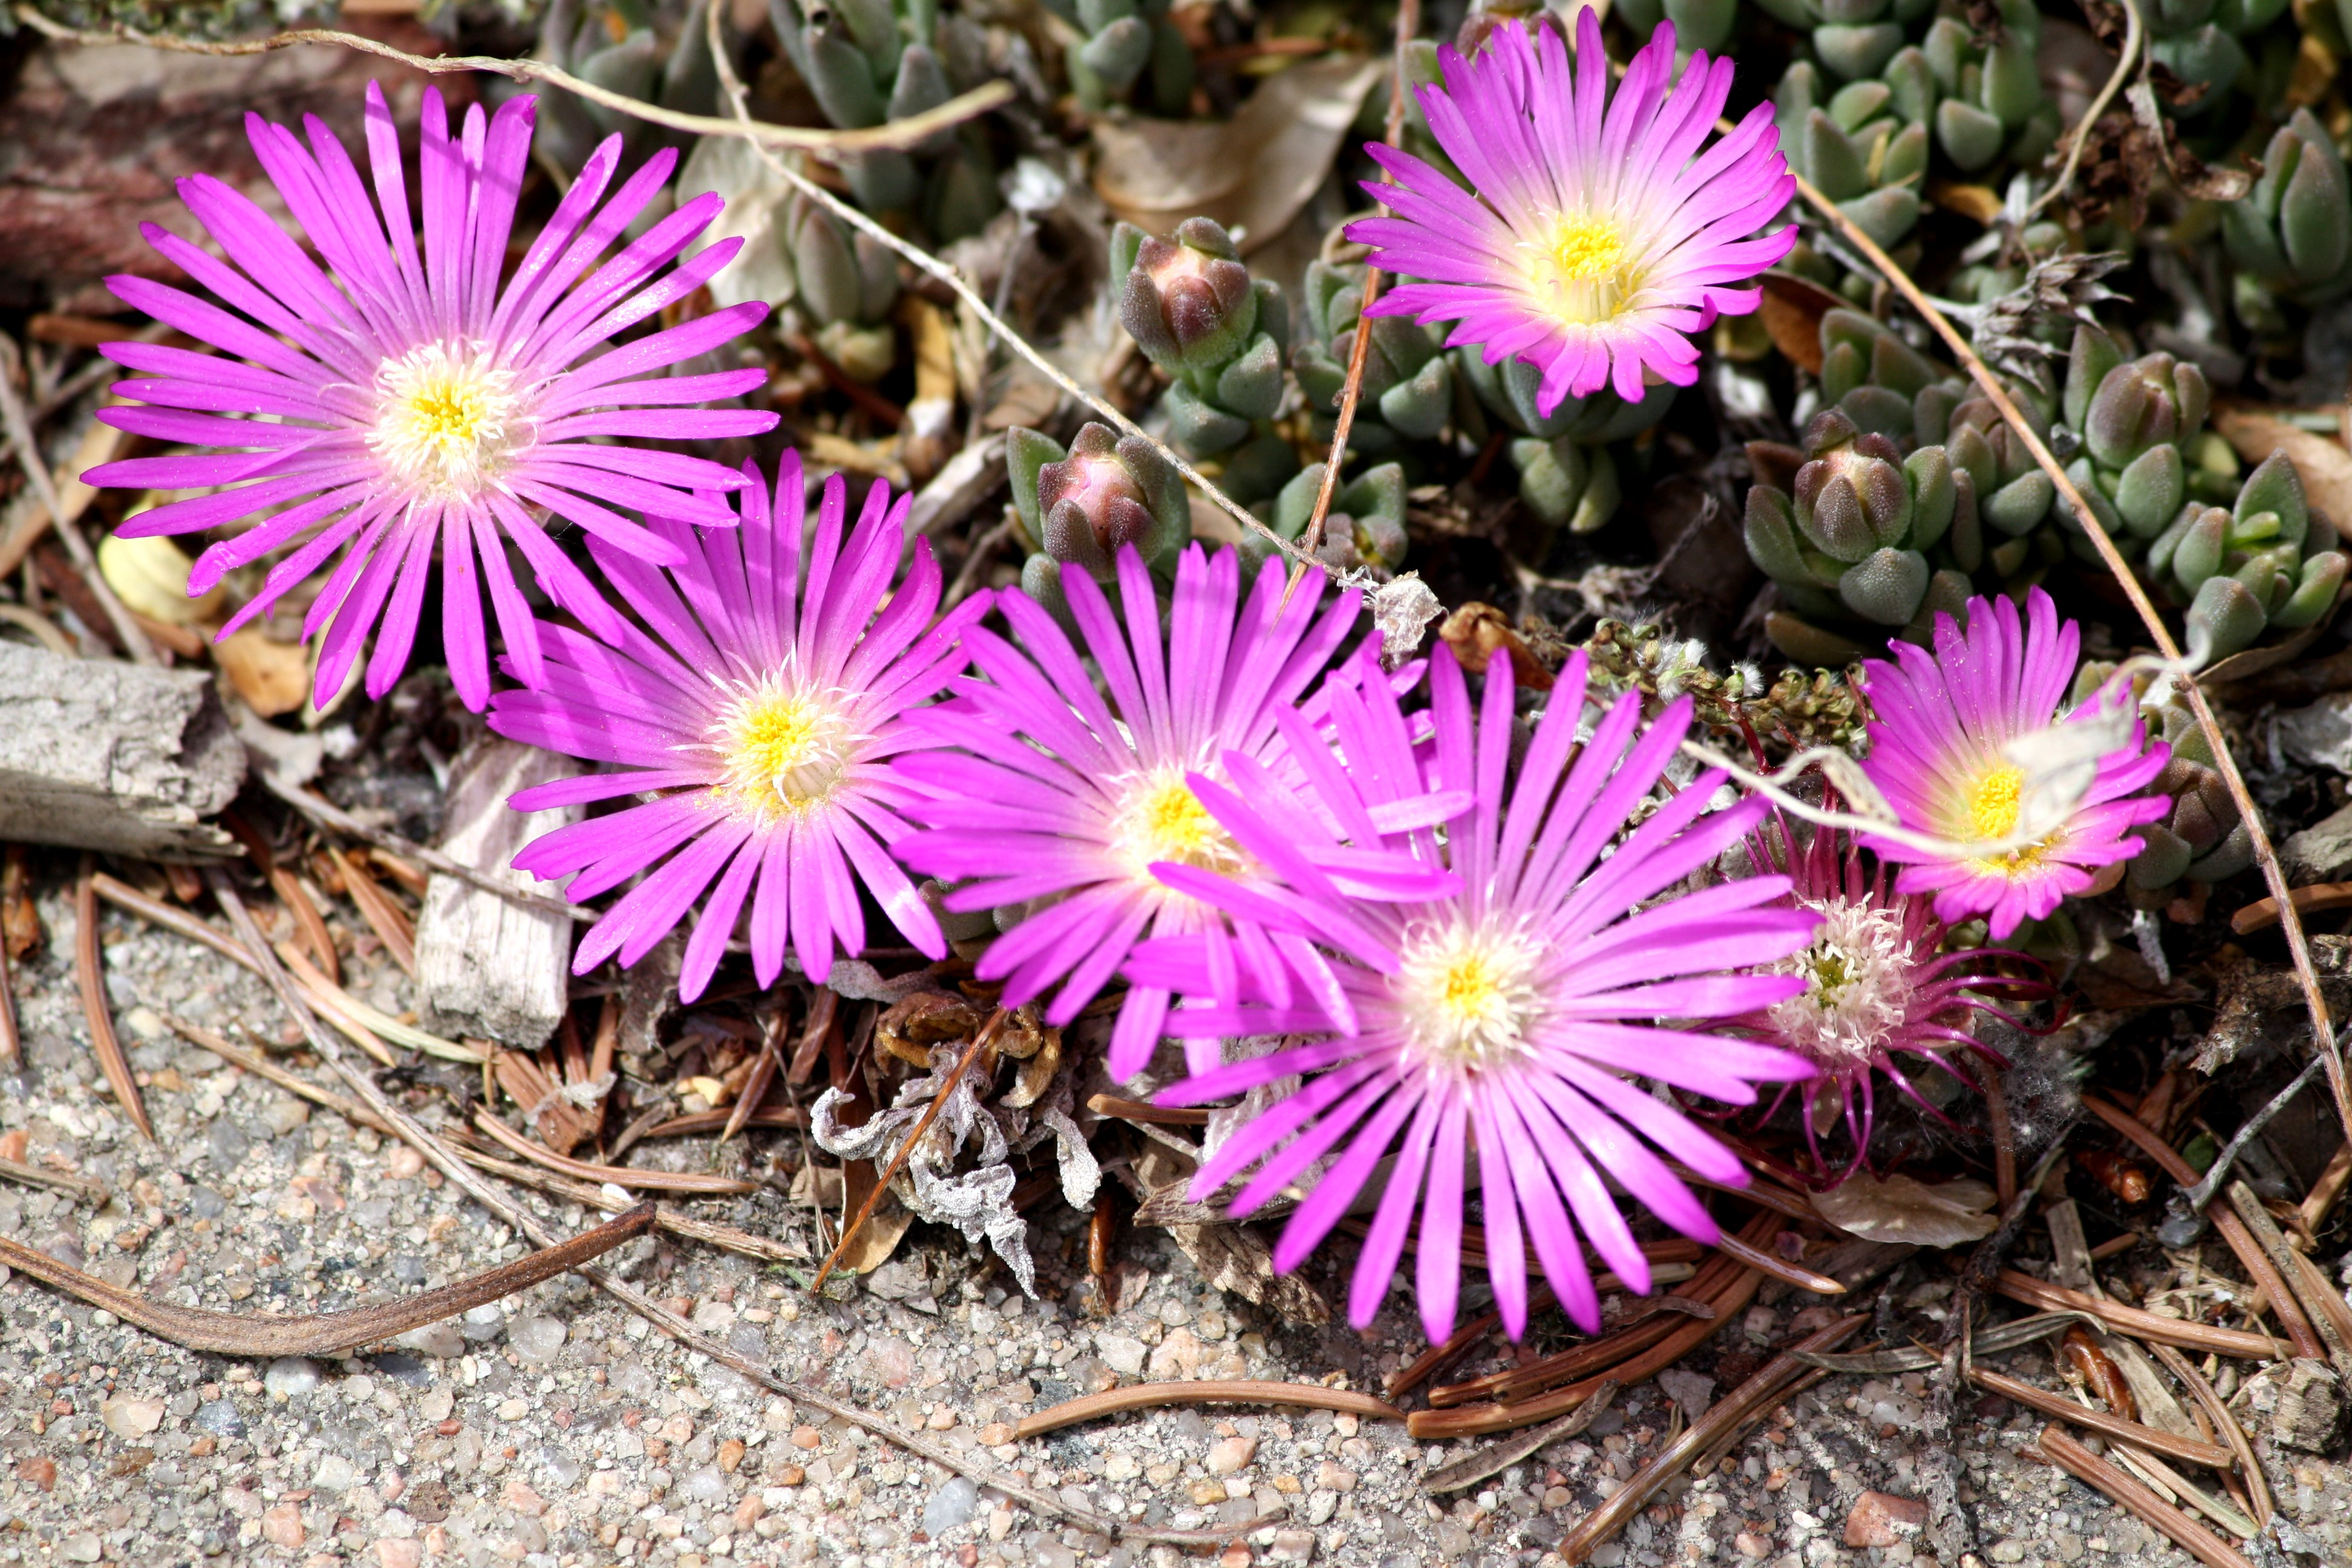 Pink Ice Plant Flowers Close Up Photos Public Domain